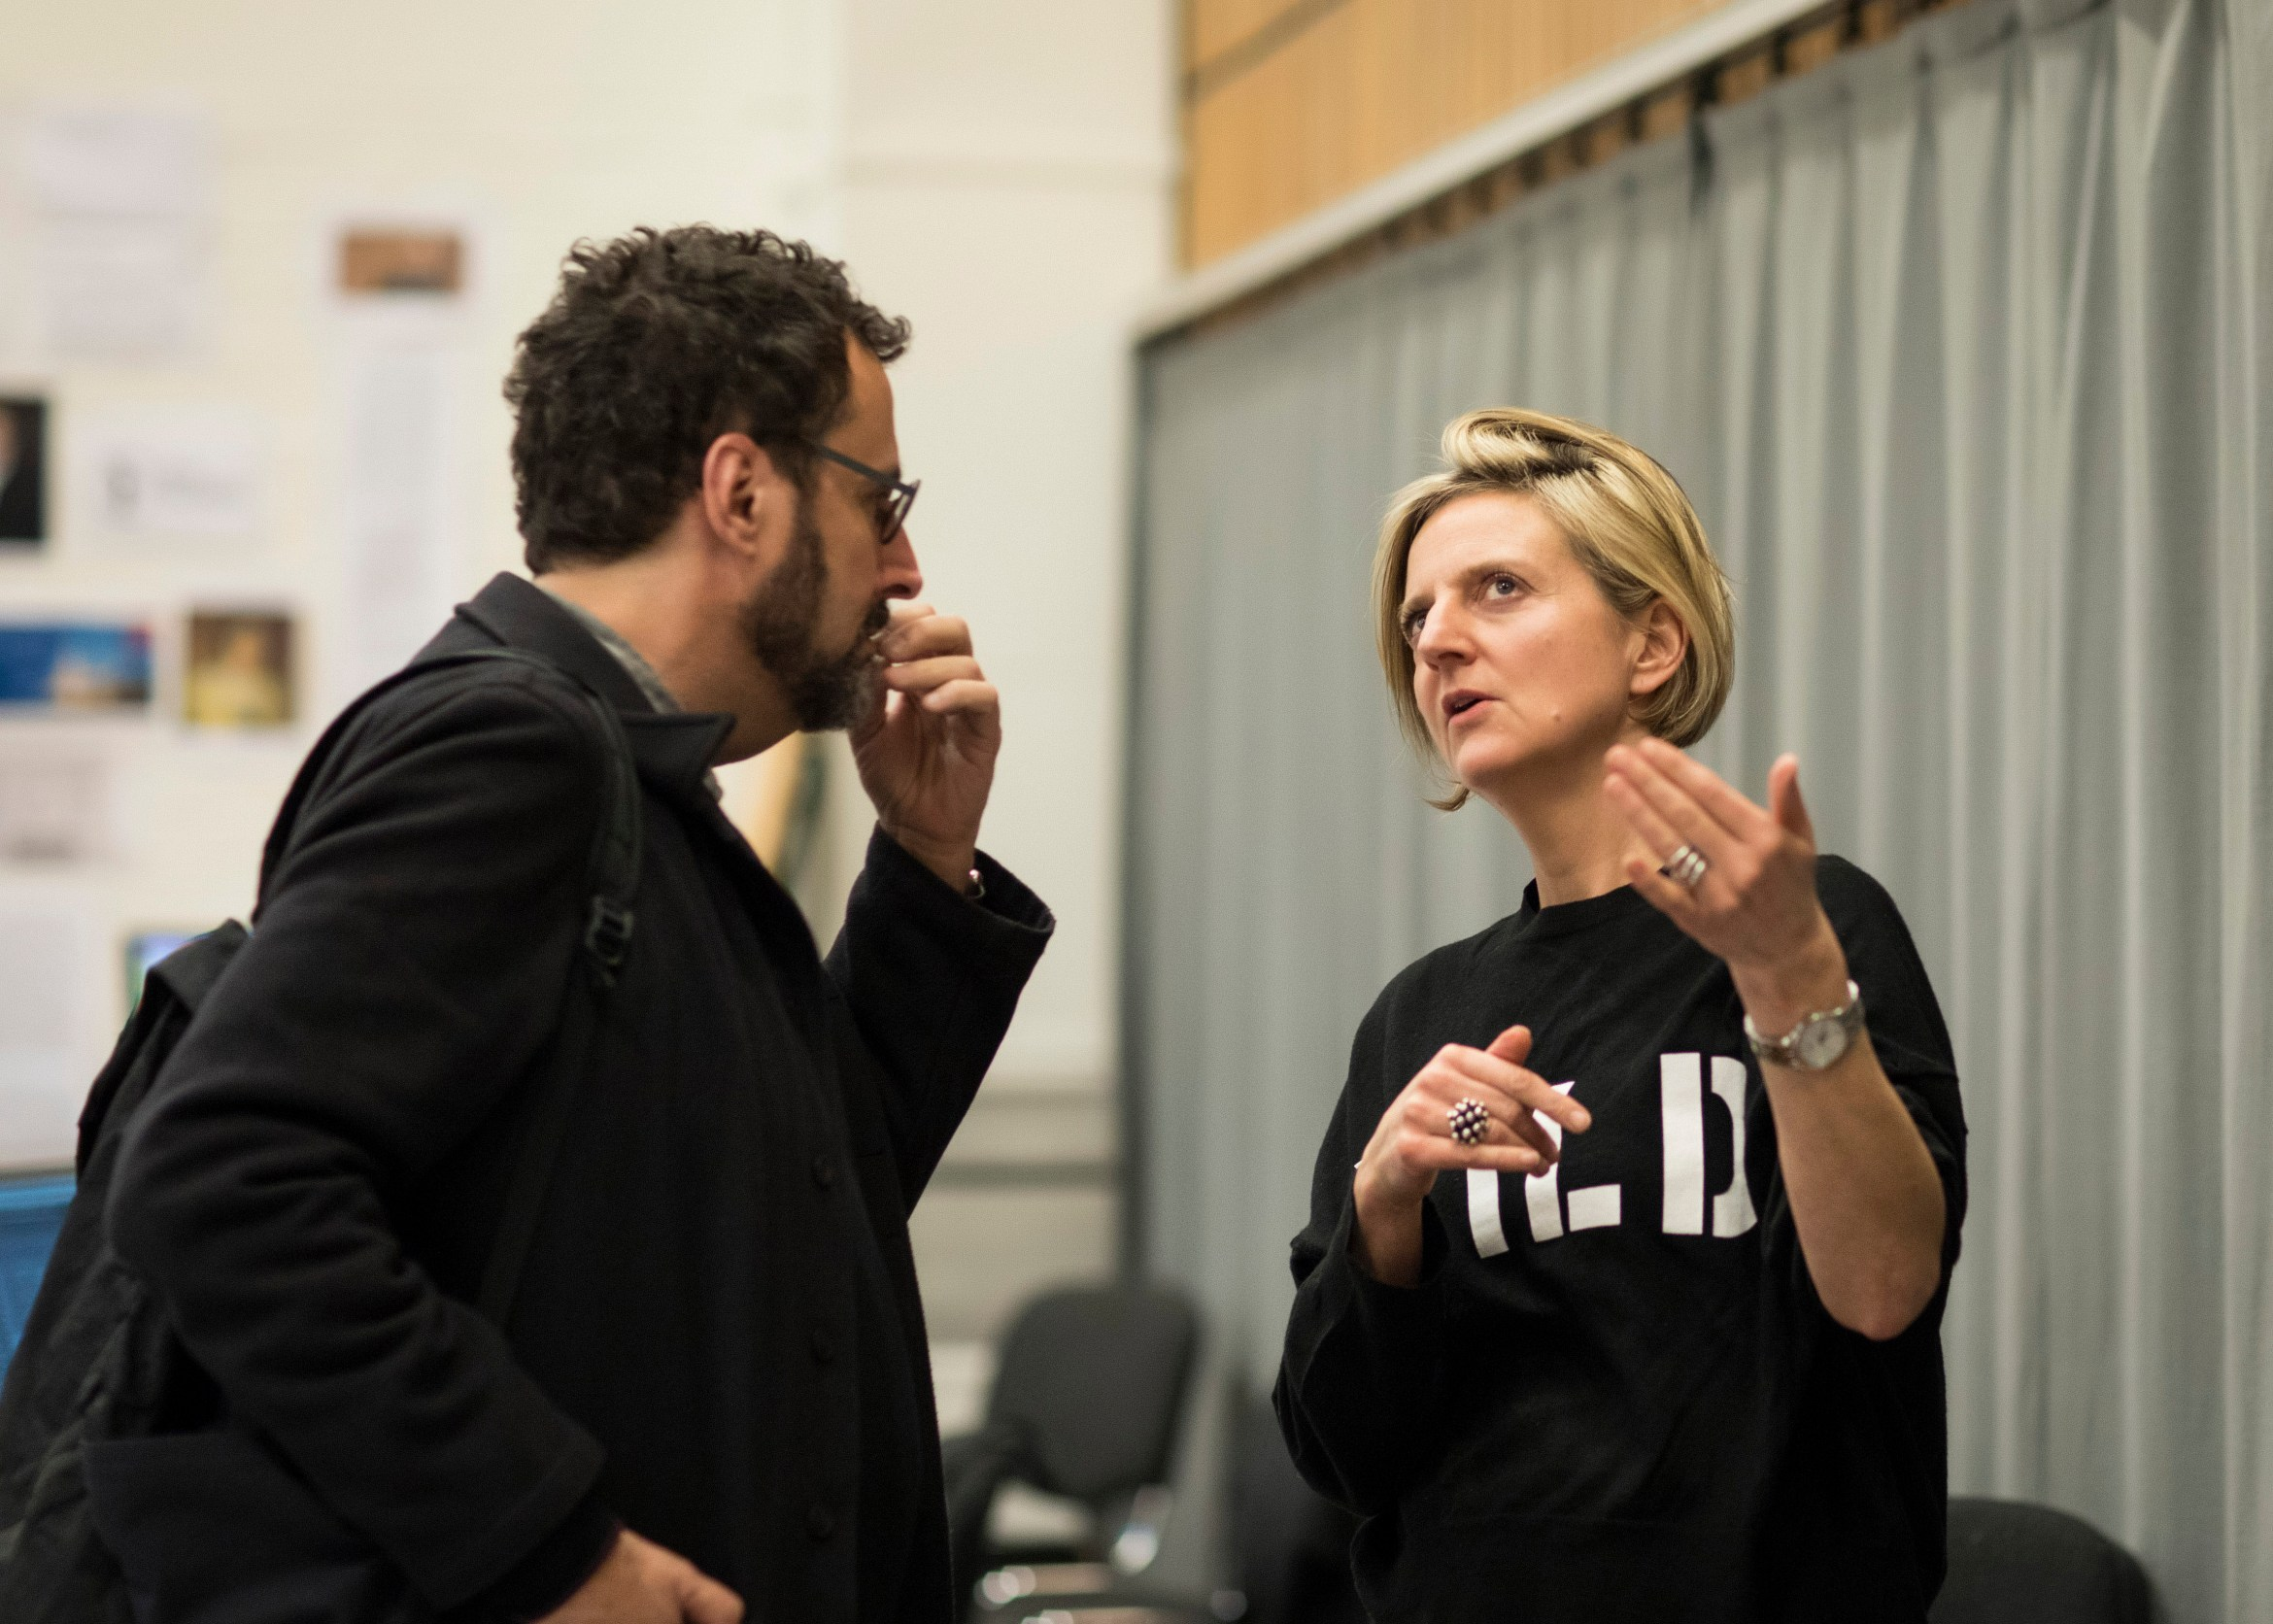 Angels in America rehearsals